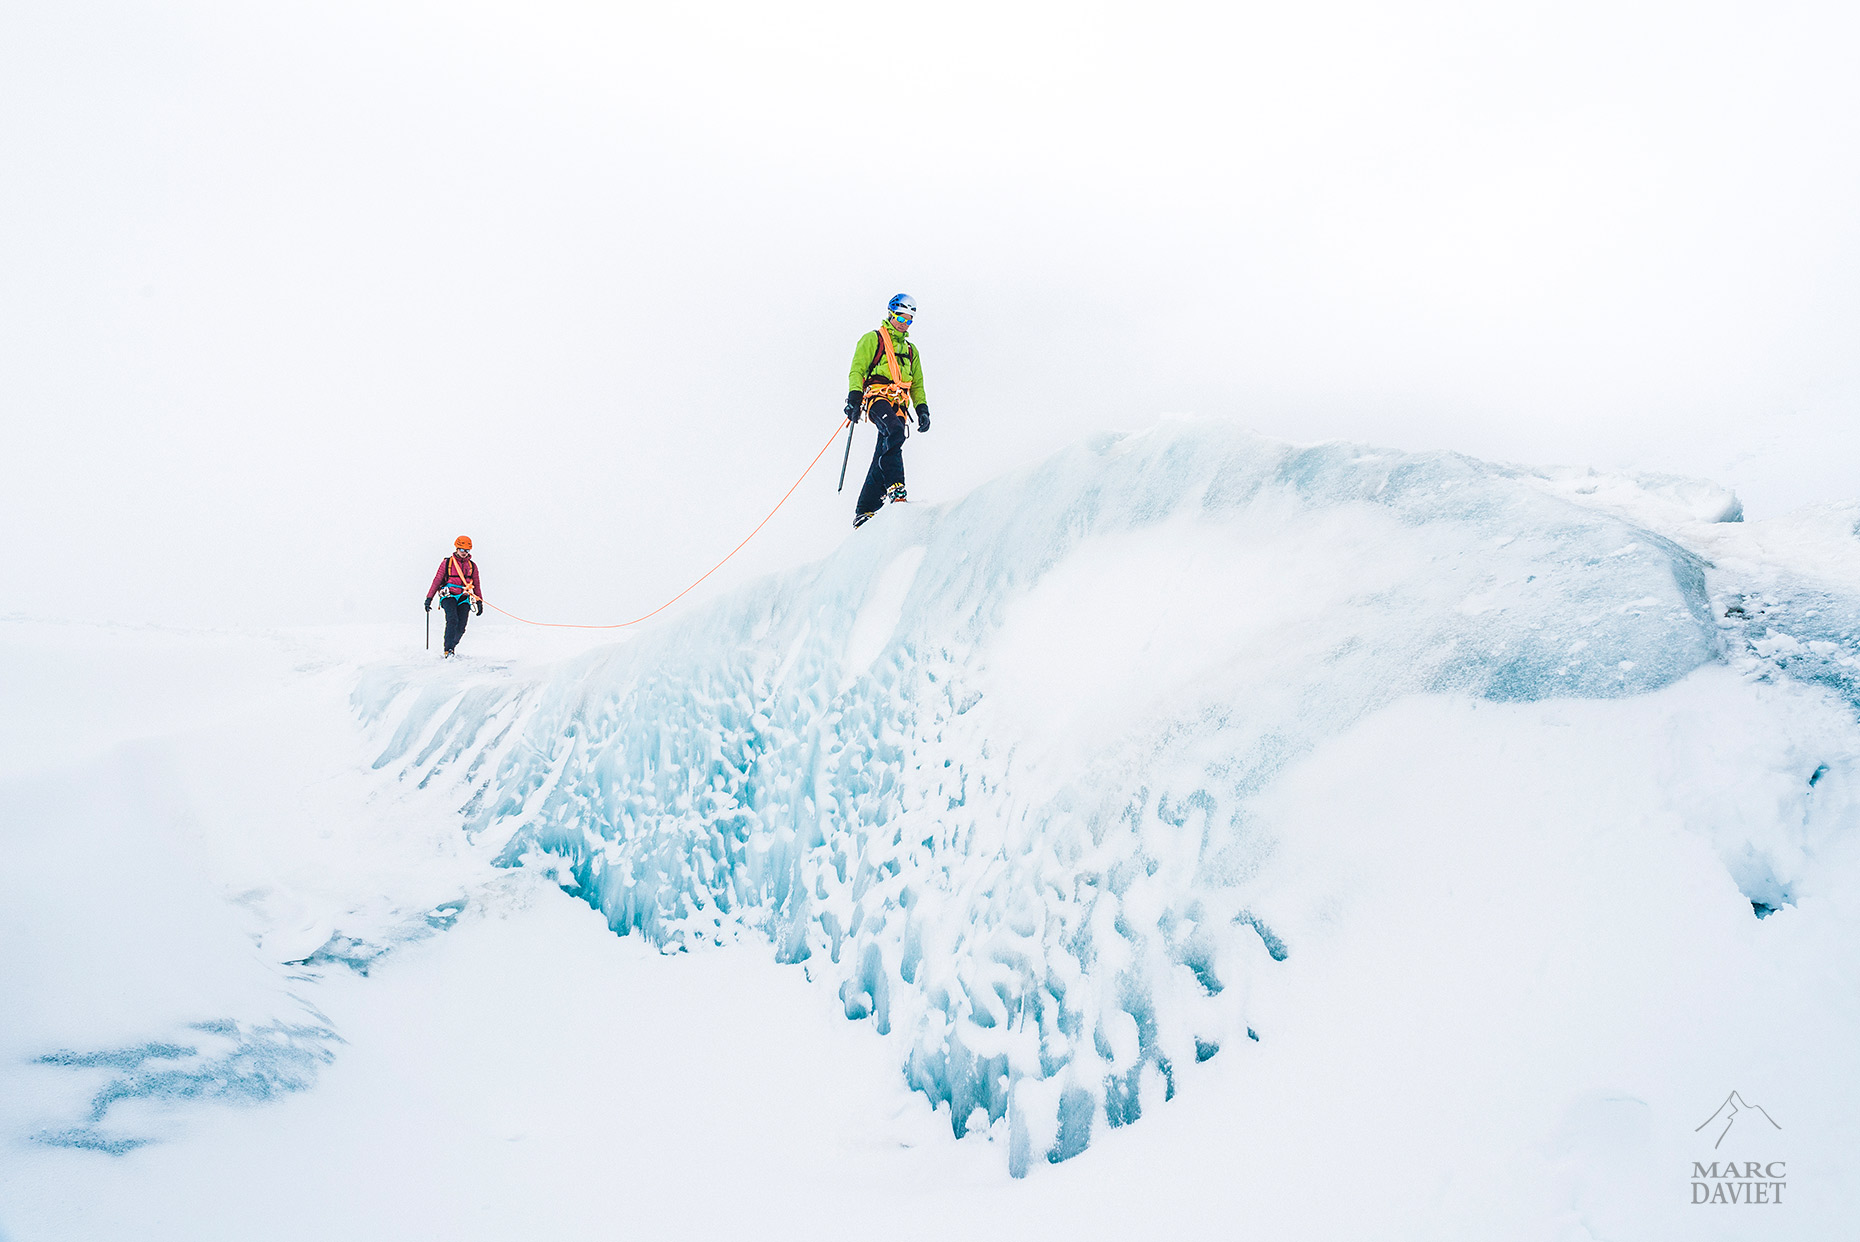 Walking on glacier - Marc Daviet Photography